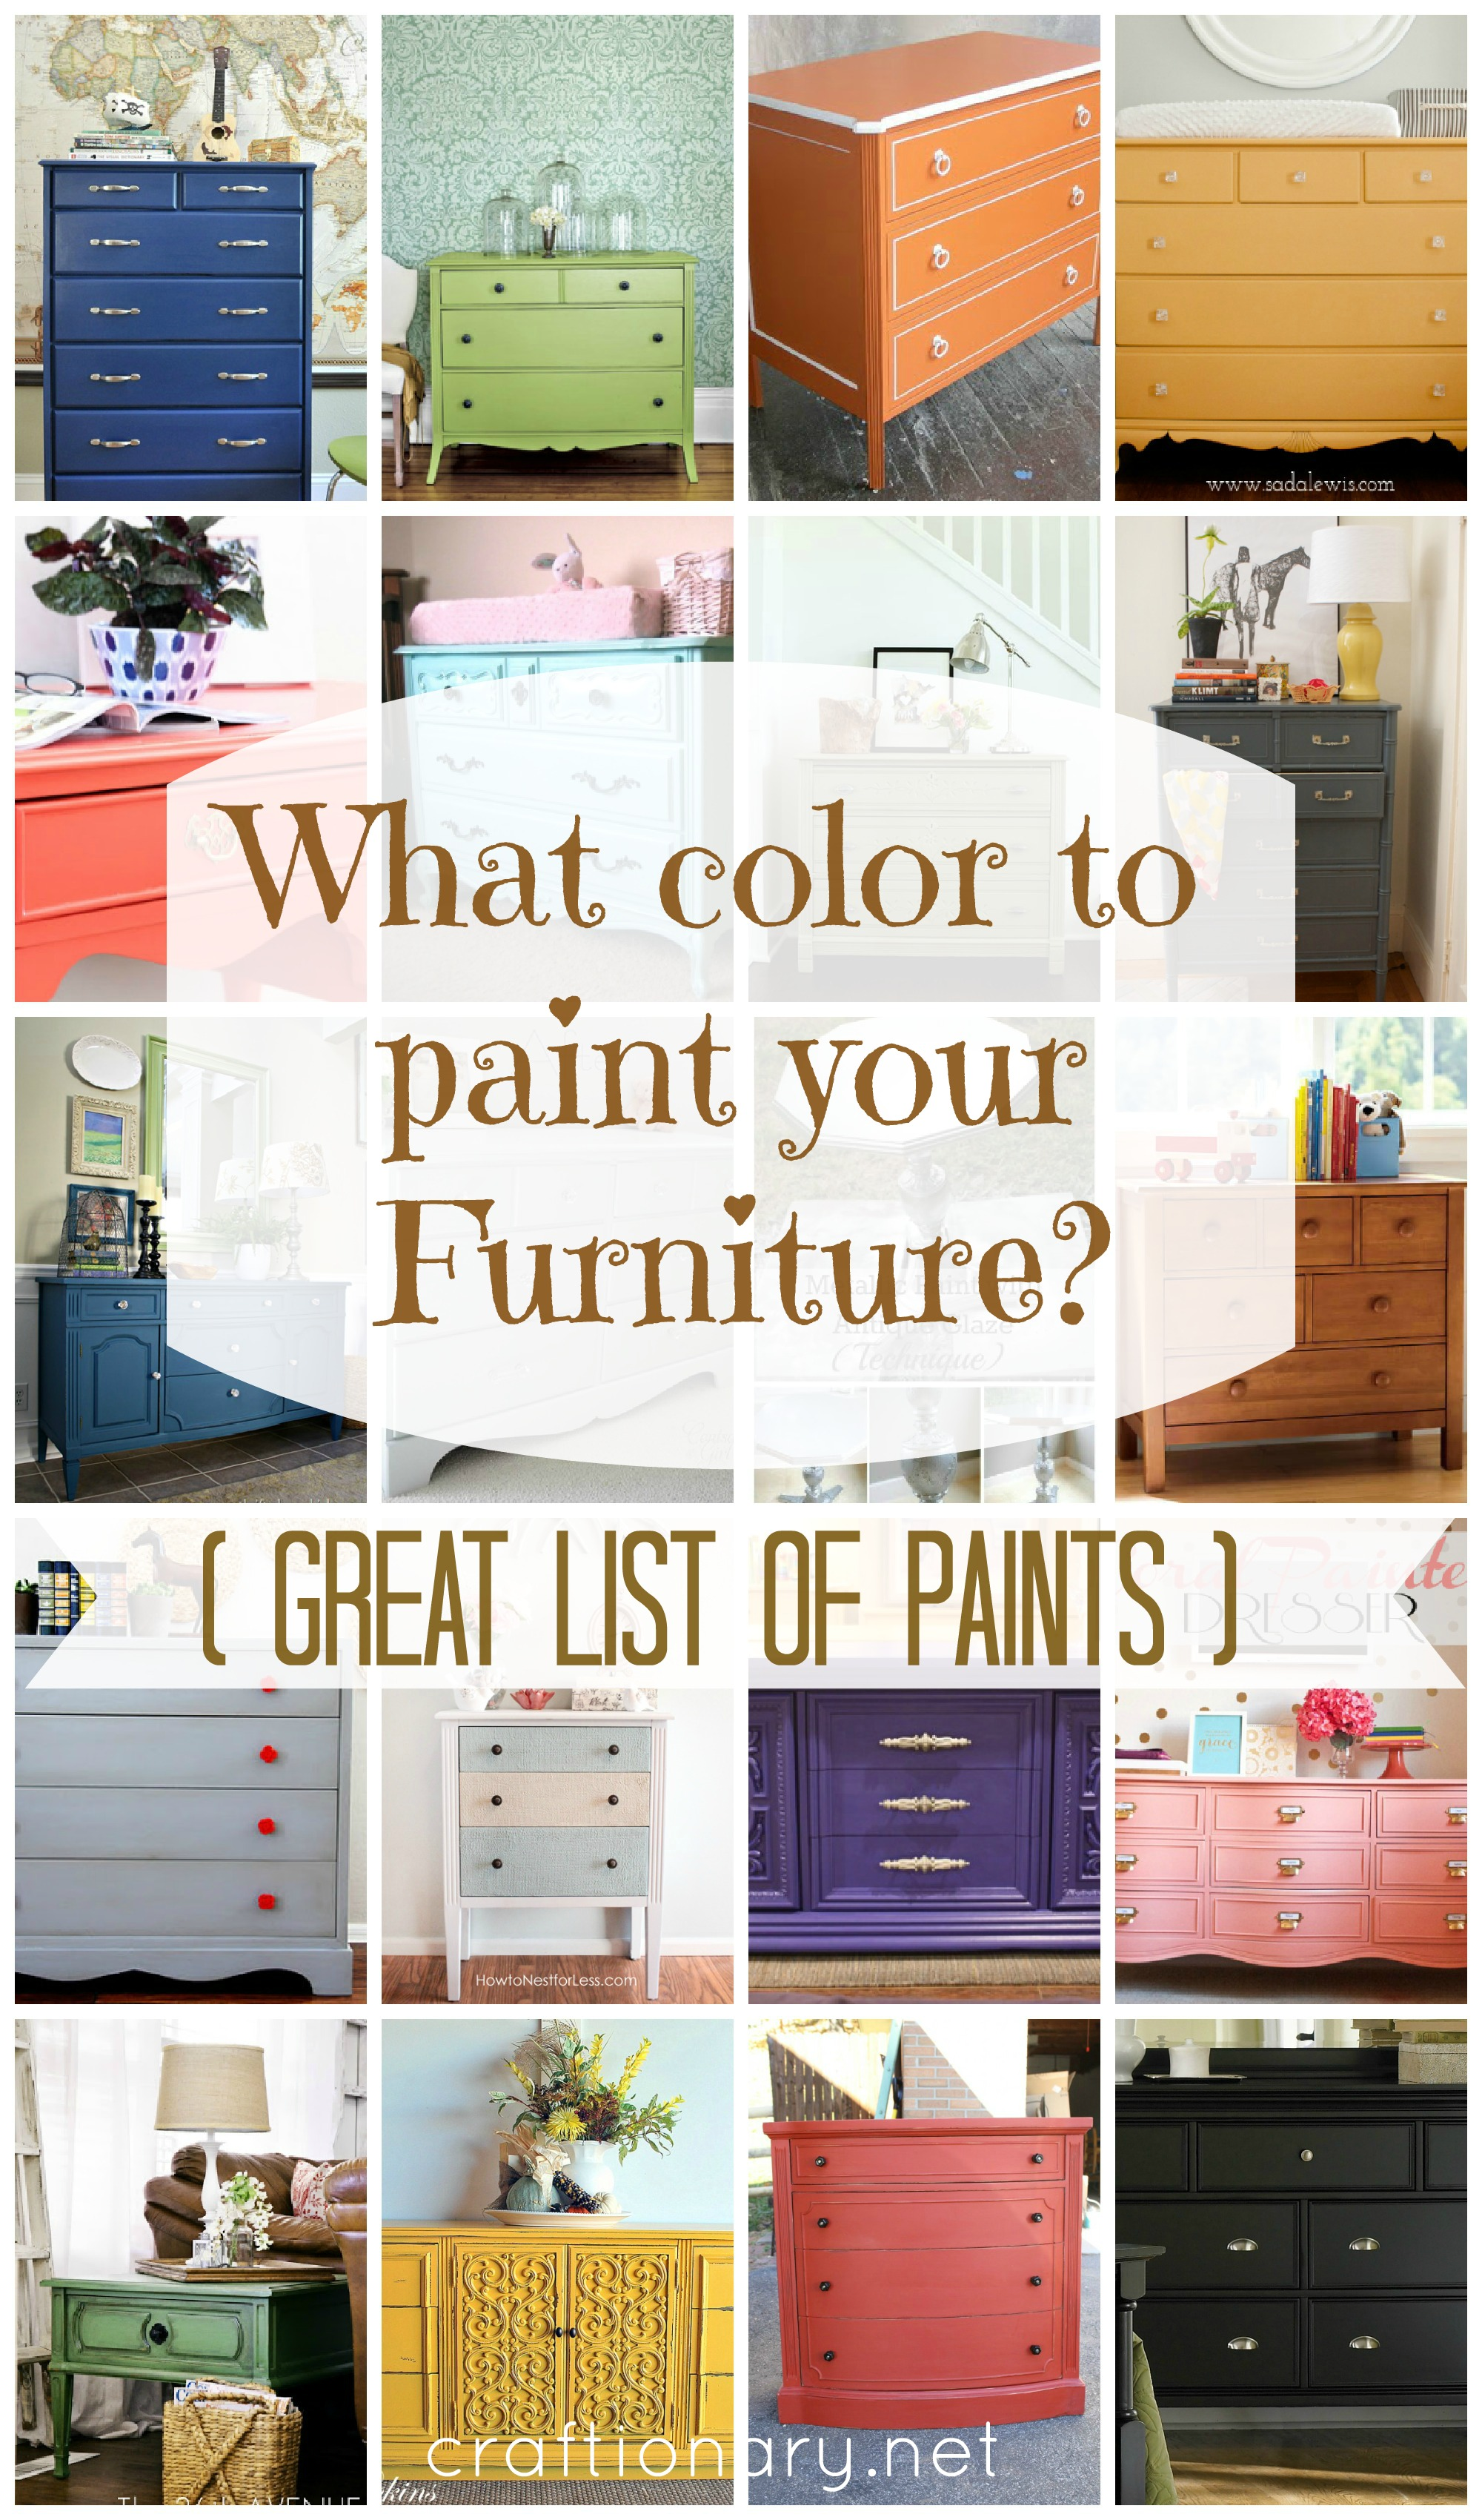 Furniture Paint Colors Ideas Prepossessing Of What Color to Paint Furniture Images